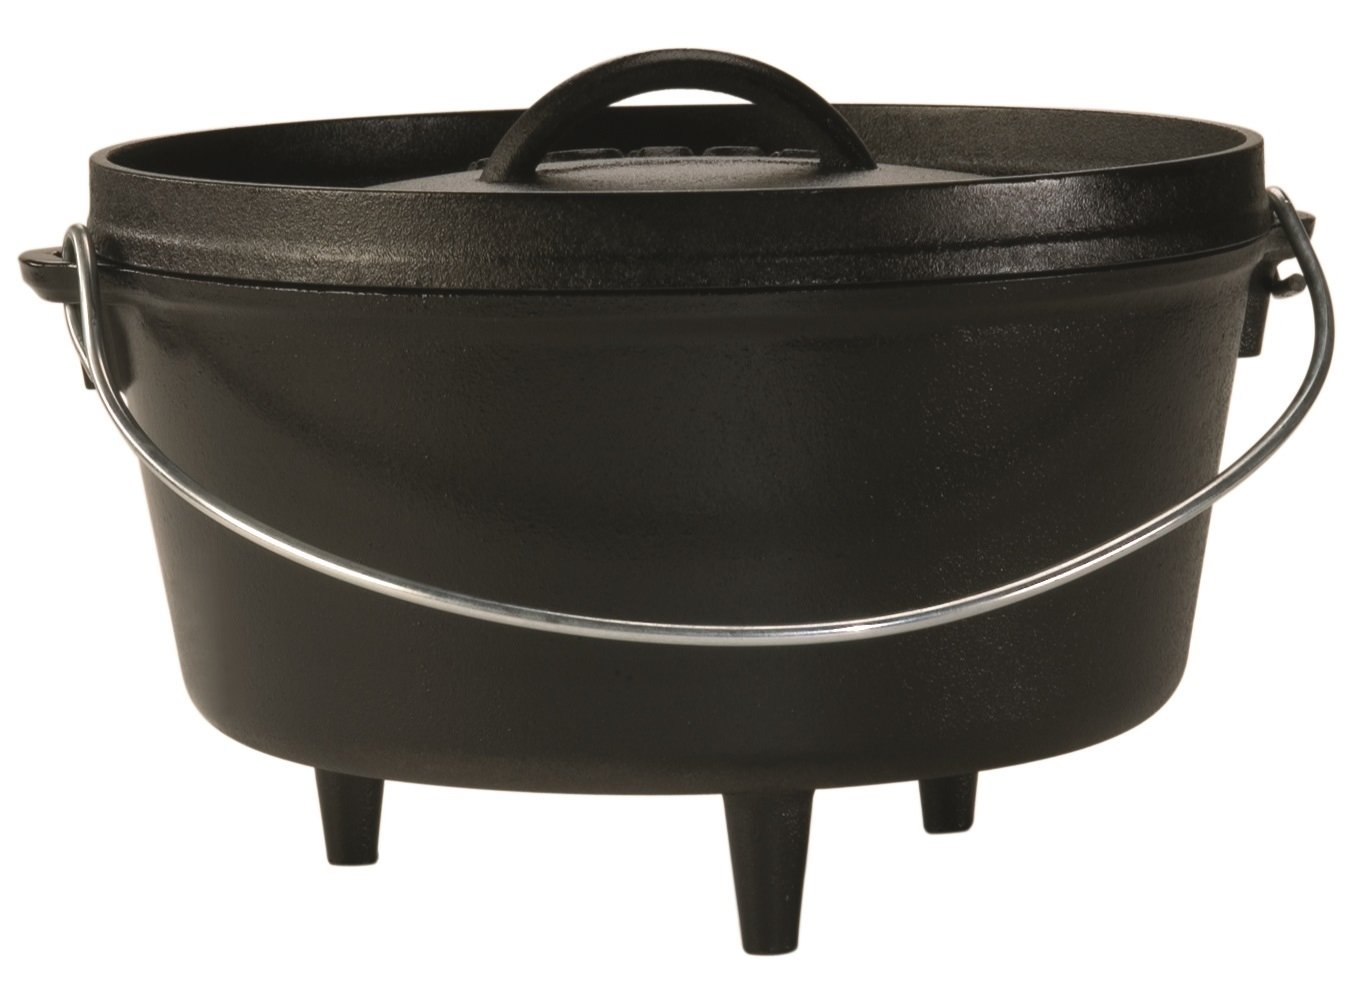 Lodge L10DCO3 Cast Iron Deep Camp Dutch Oven, Pre-Seasoned, 5-Quart